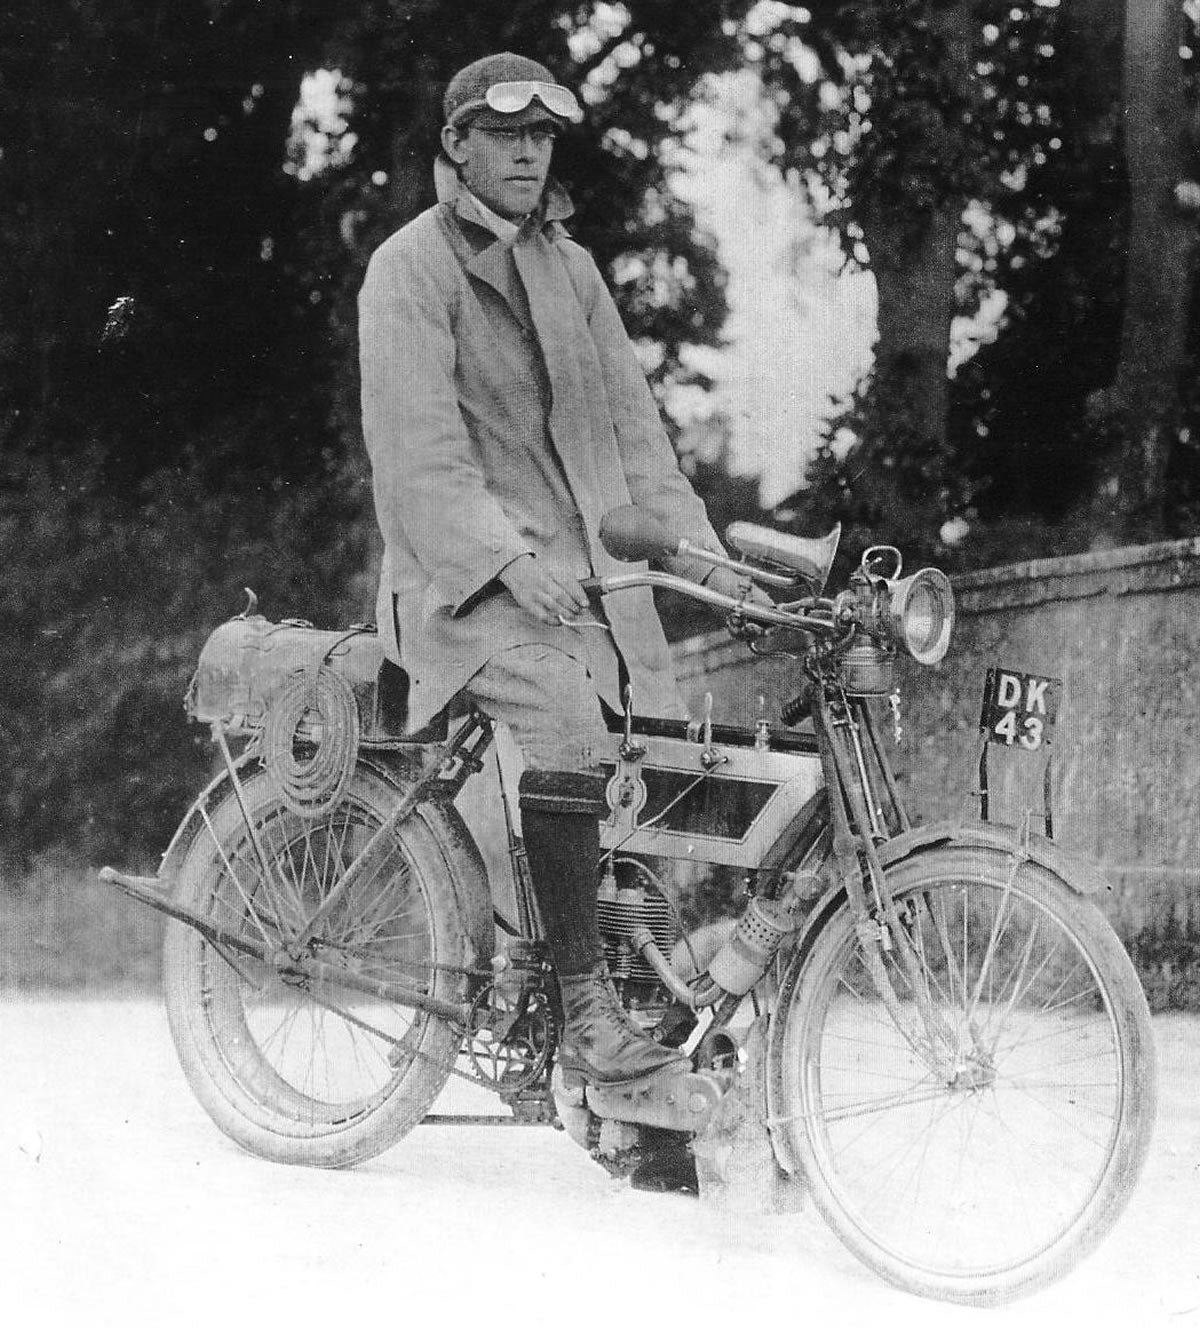 Triumph reached out to Rev Basil H. Davies a.k.a. Ixion a famous writer (pictured above) to test their very first motor made in 1905.